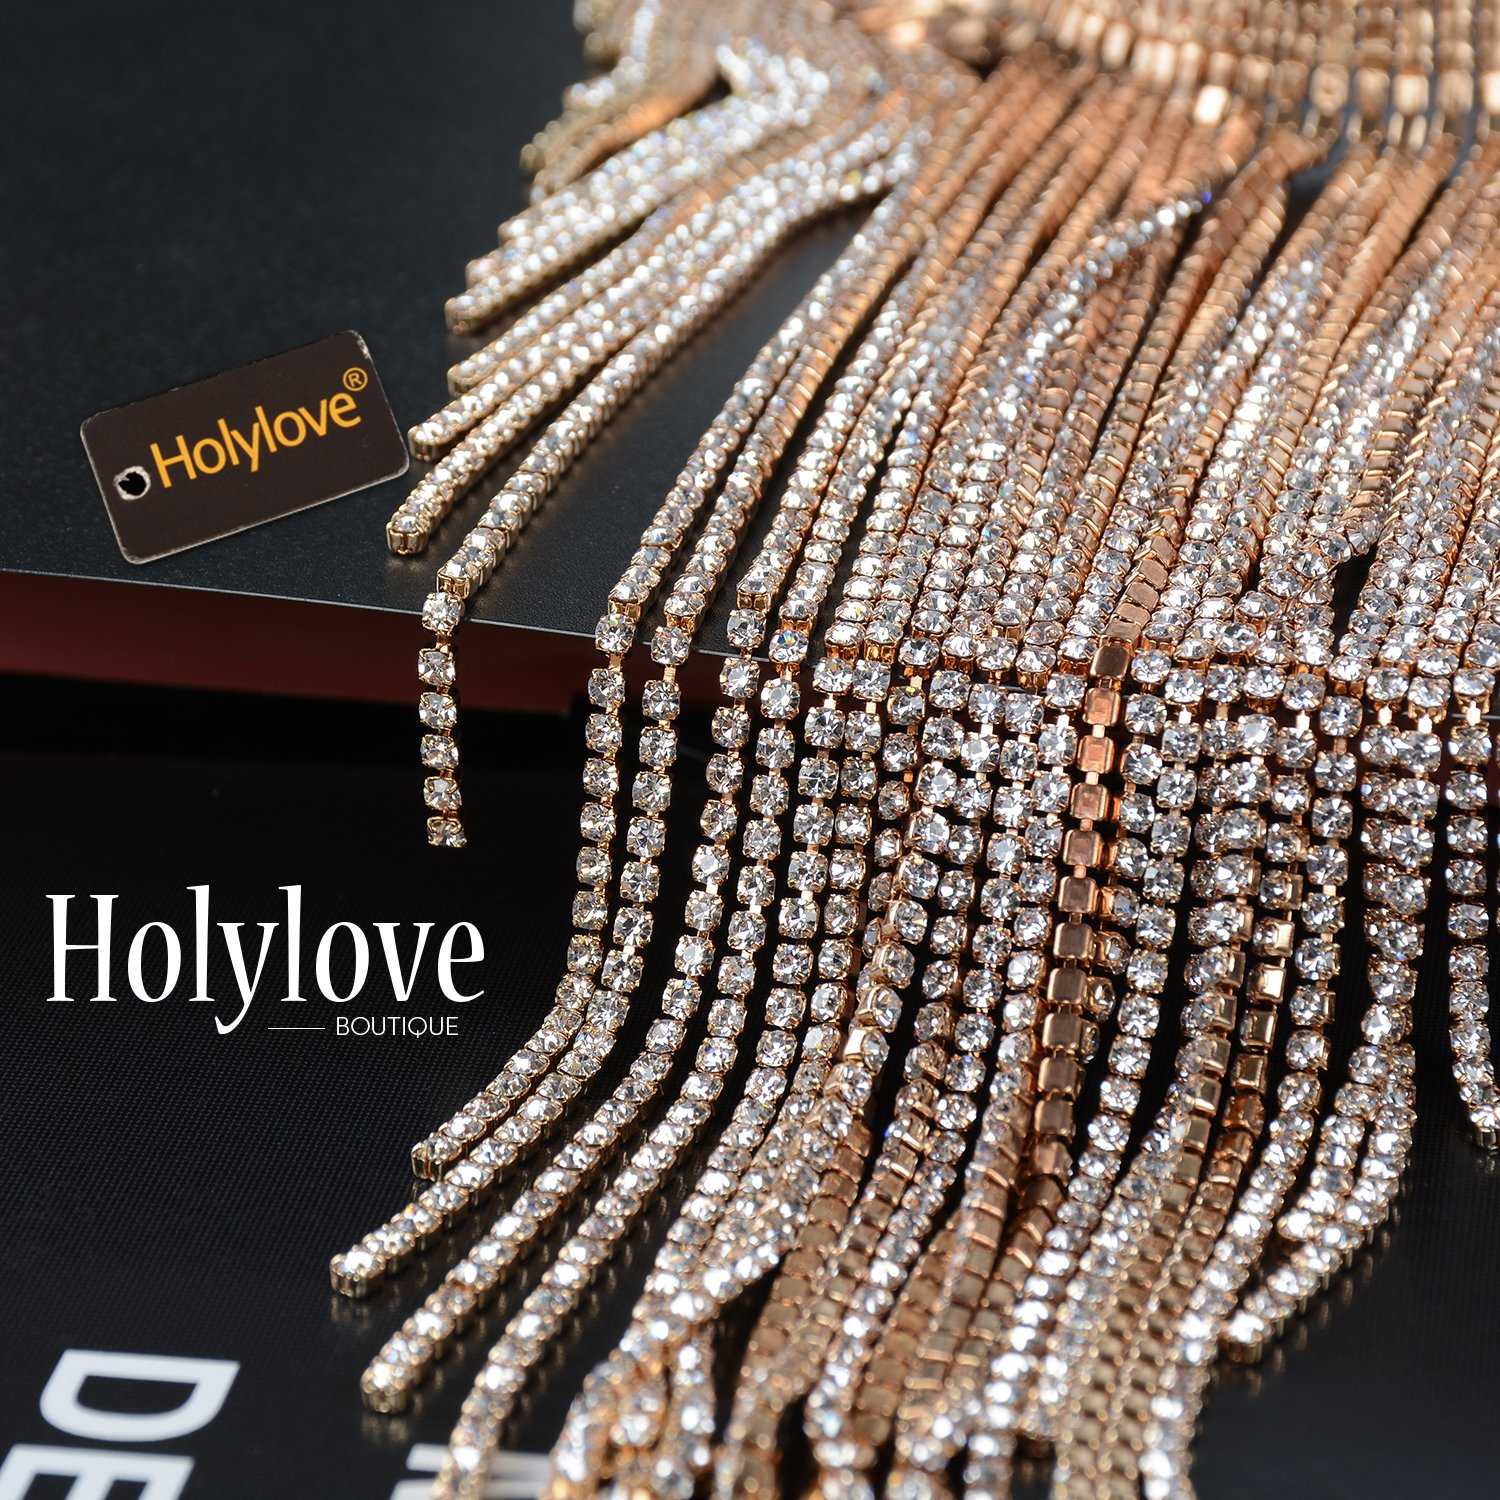 Holylove 2 Colors Tassel Collar Statement Necklace for Women Novelty Fashion Jewelry 1 Set with Gift Box (Gold-23) by Holylove (Image #5)